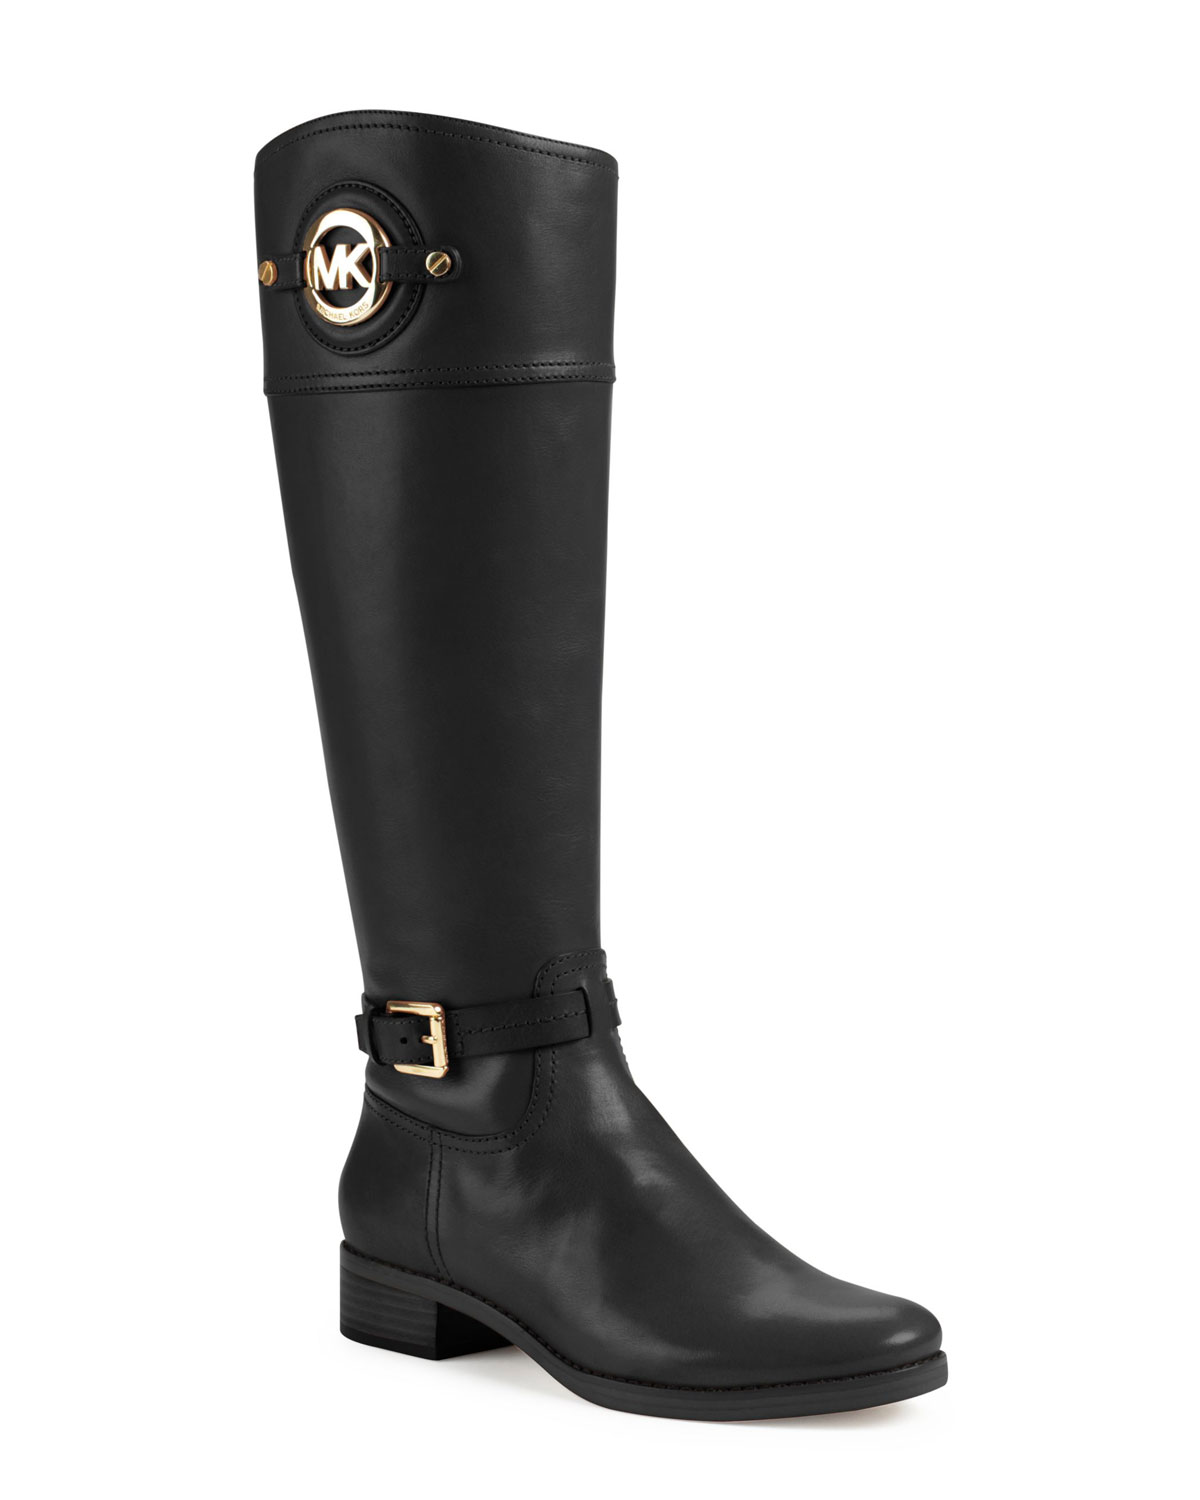 michael kors michael stockard twotone leather riding boot in black lyst. Black Bedroom Furniture Sets. Home Design Ideas